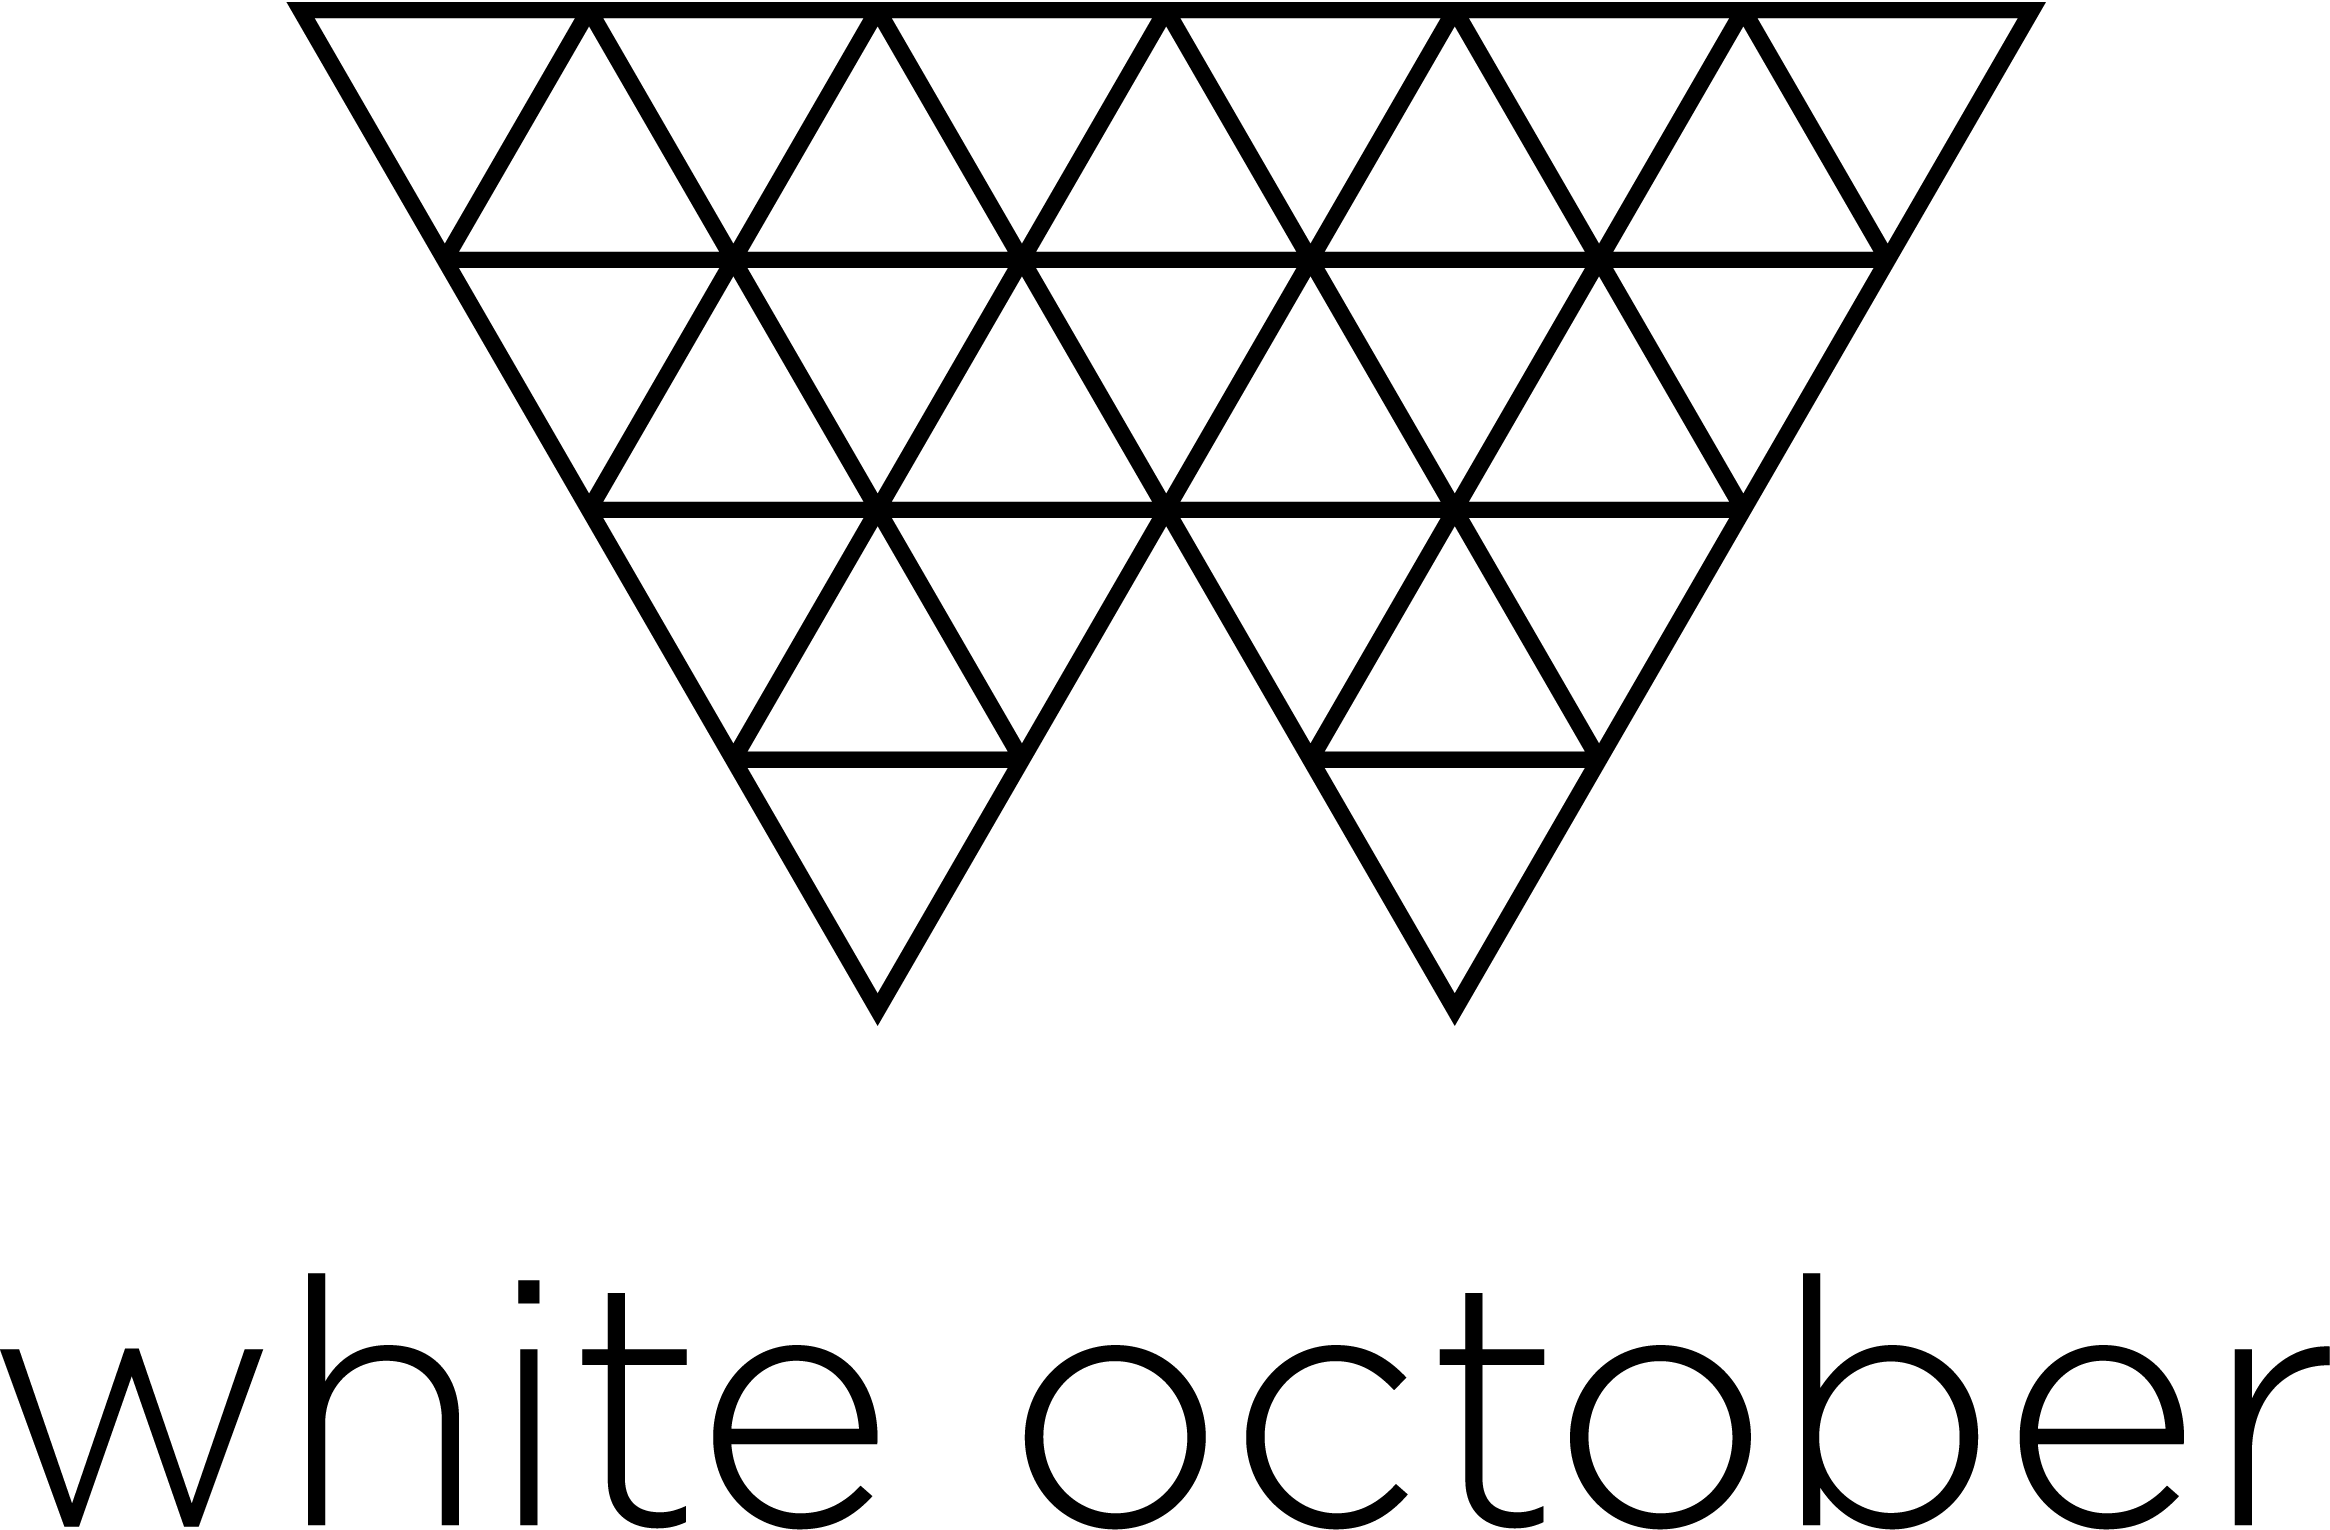 wo_logo_secondary_square_grey_ol1.png